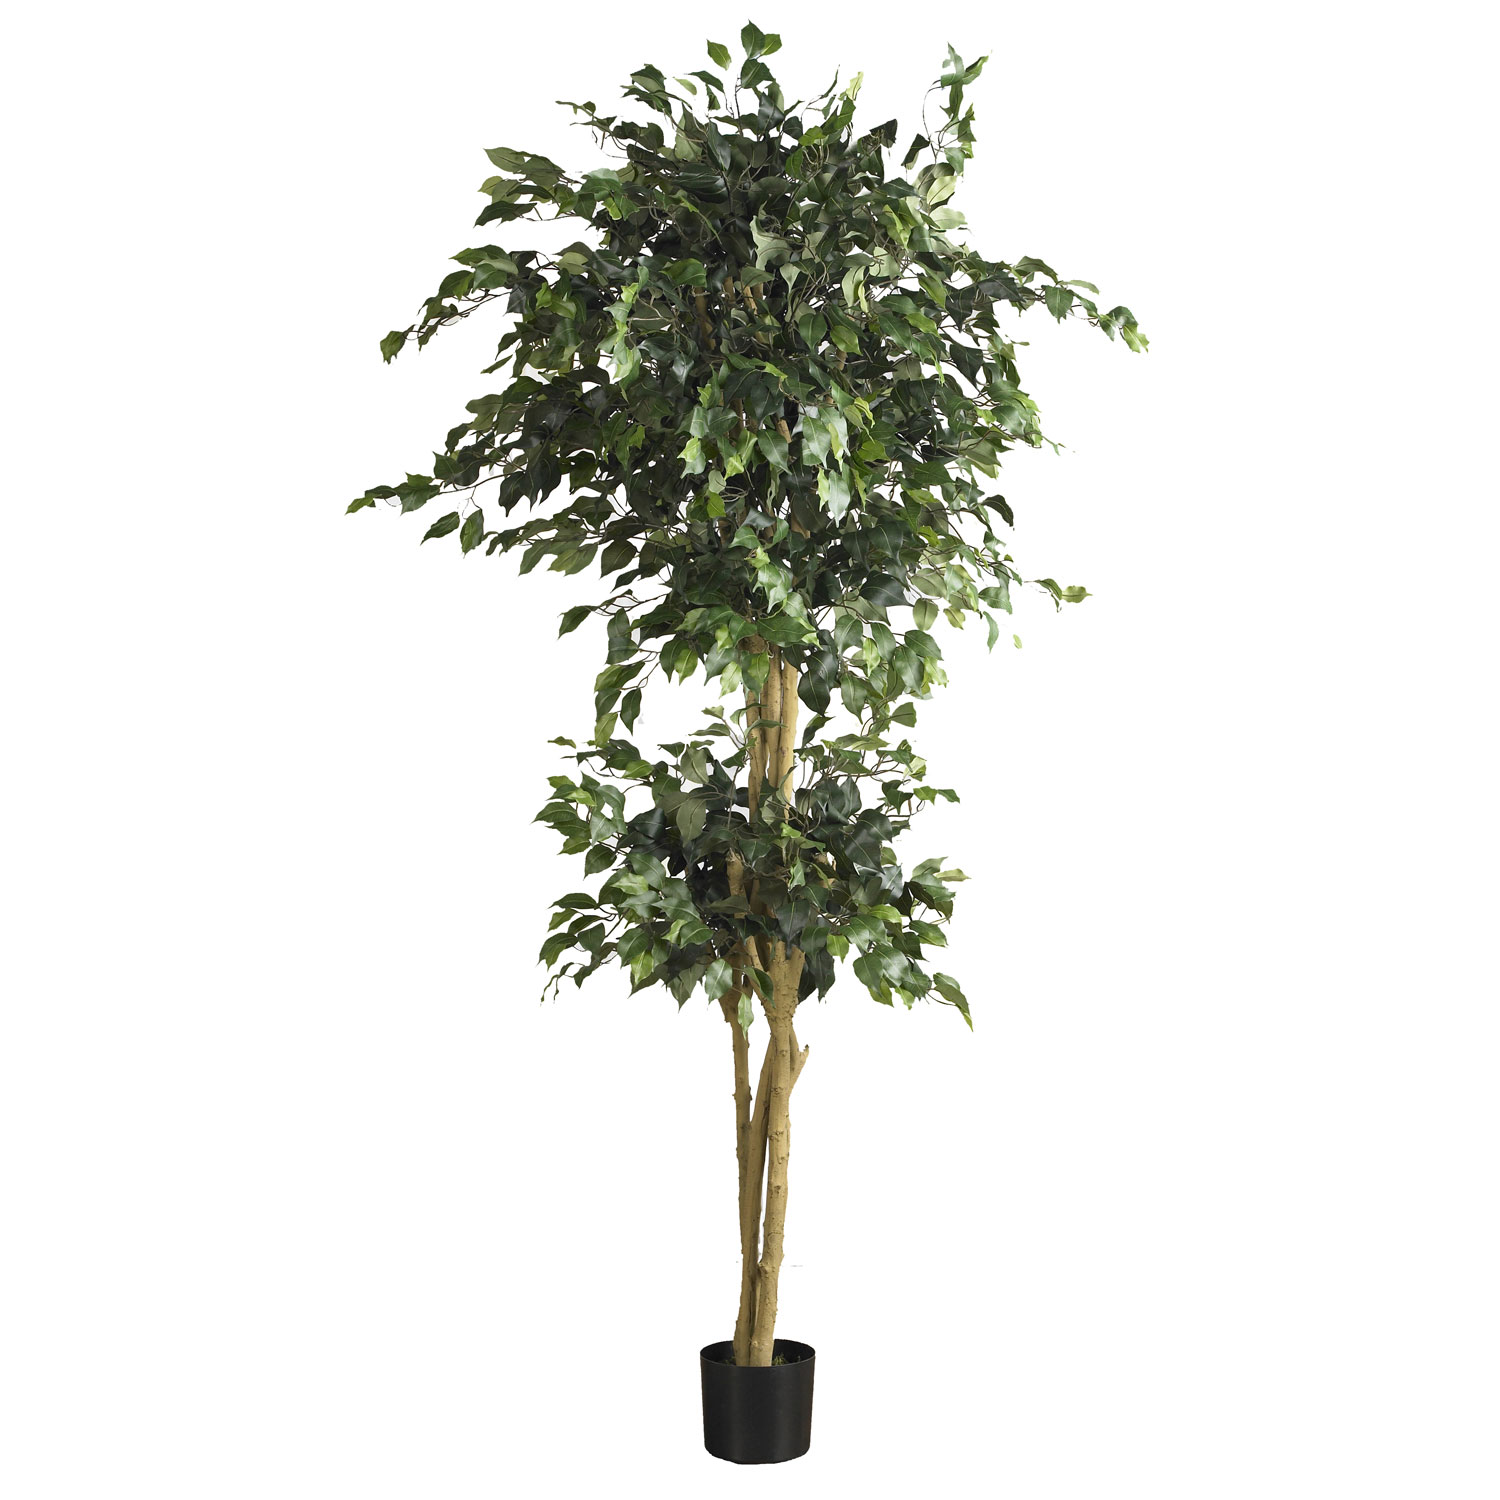 6 foot Double Ball Ficus Tree: Potted 5268